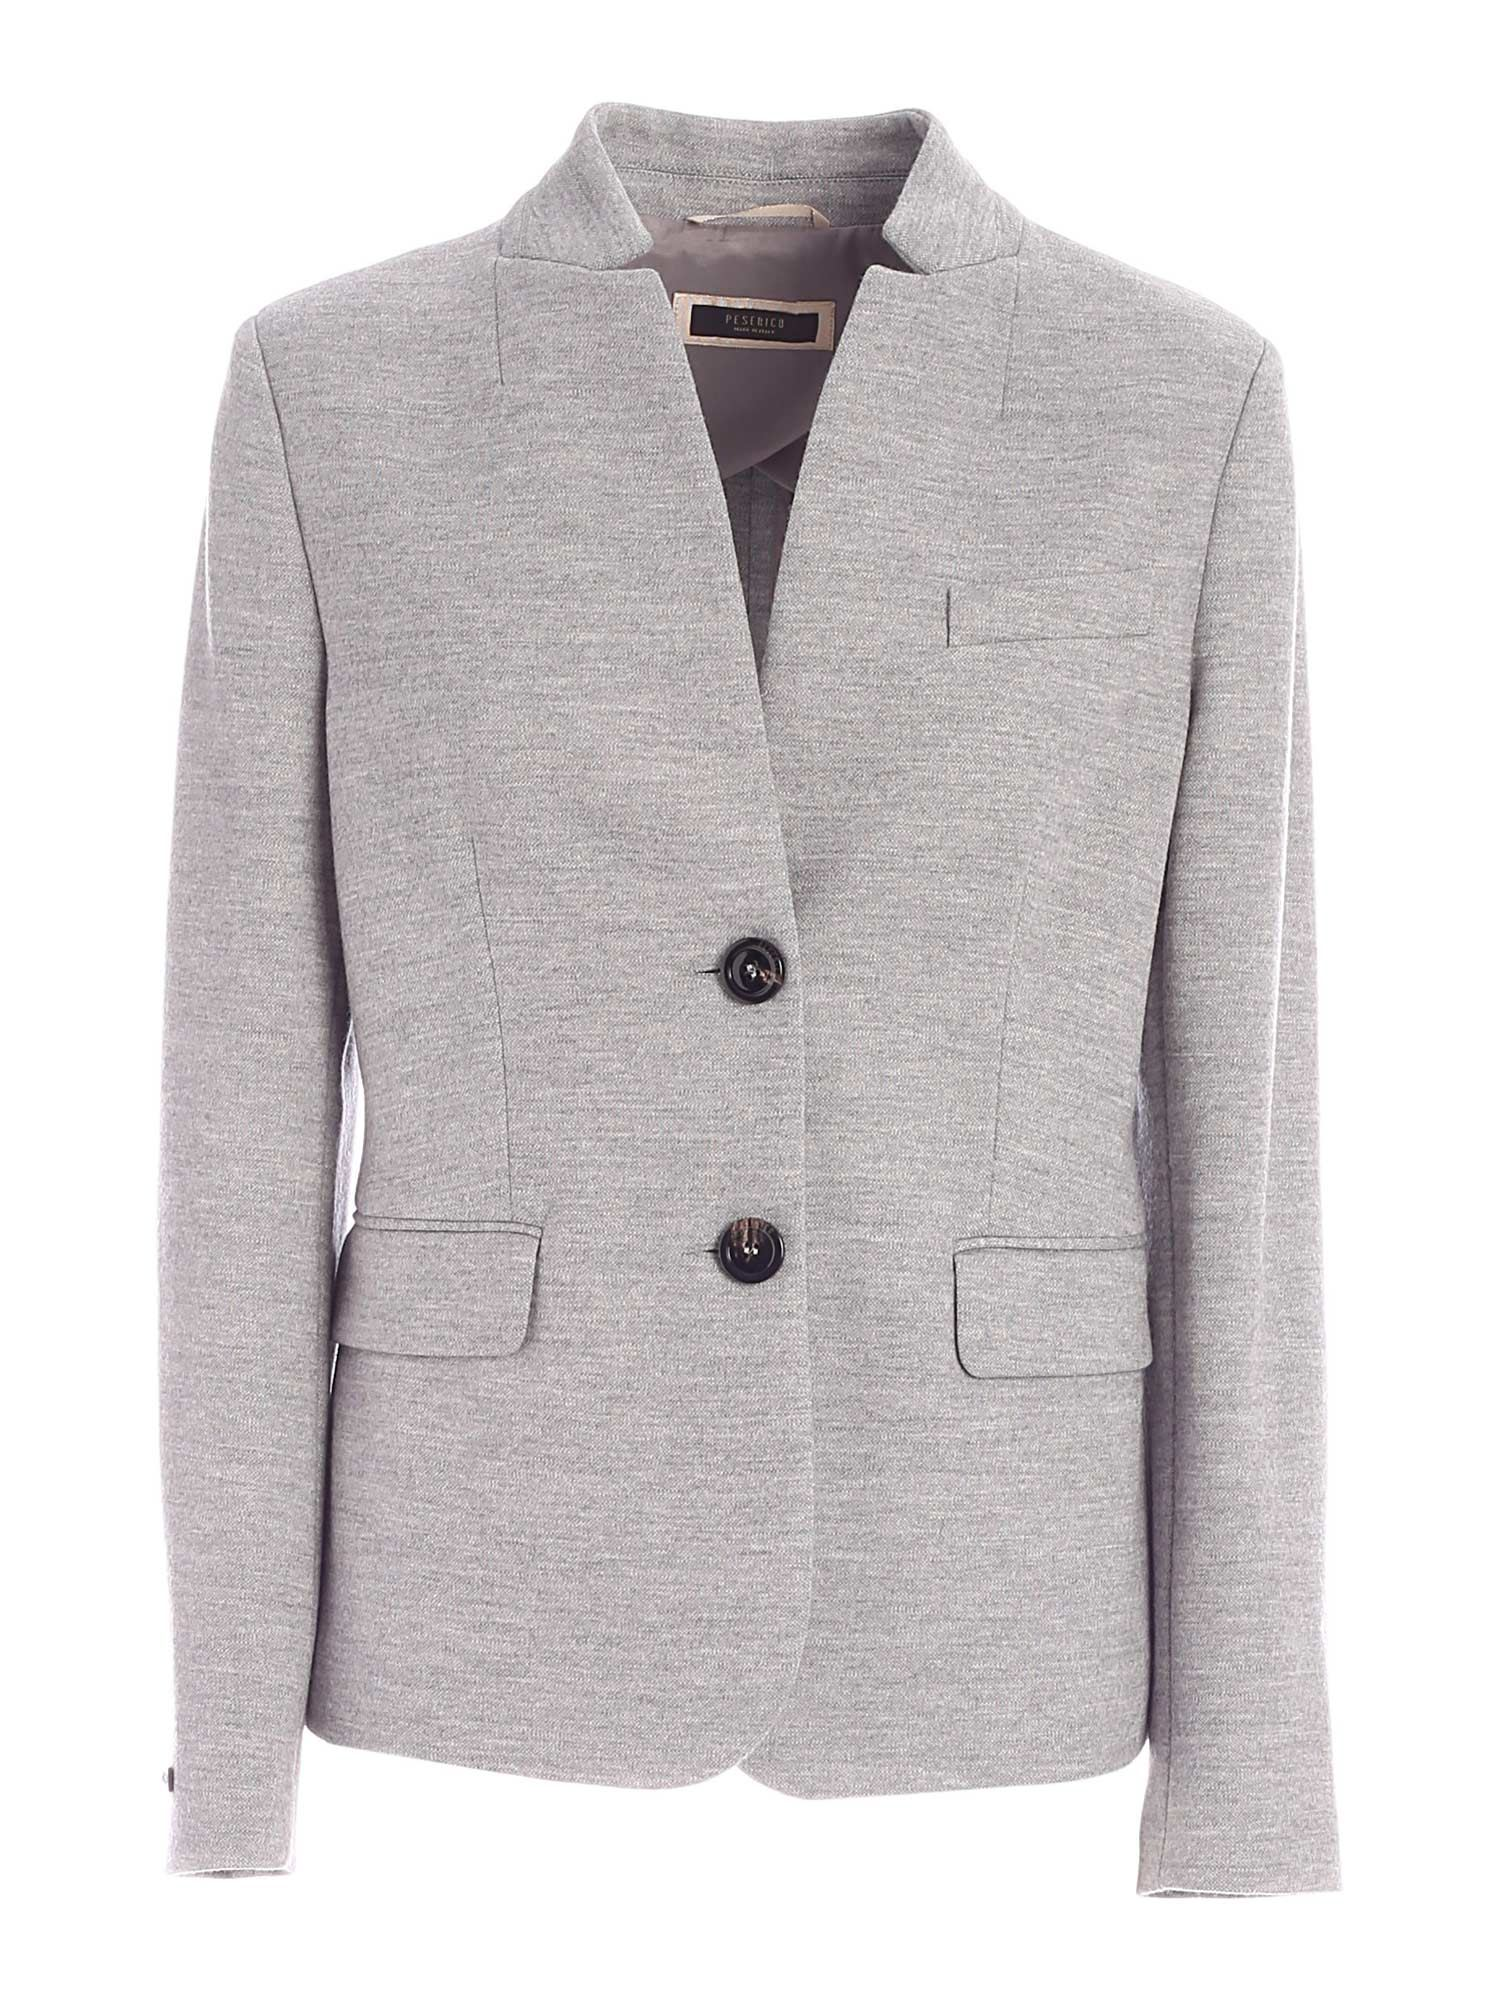 Peserico SEMI-LINED SINGLE-BREASTED JACKET IN GREY